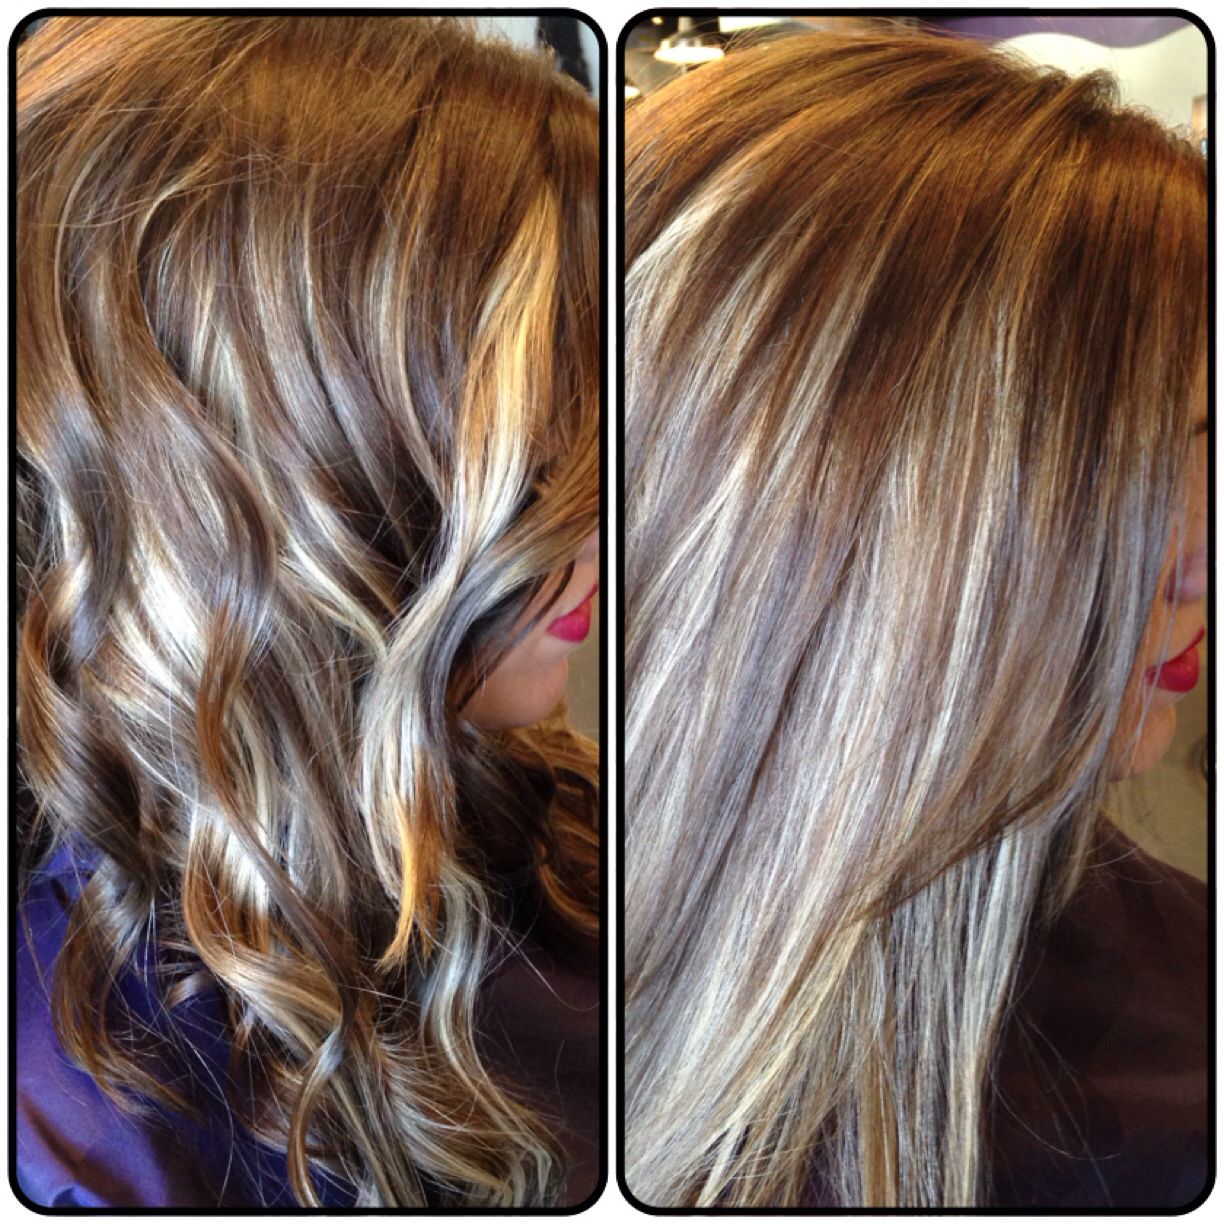 halo dark with chunky highlights under. straightened and